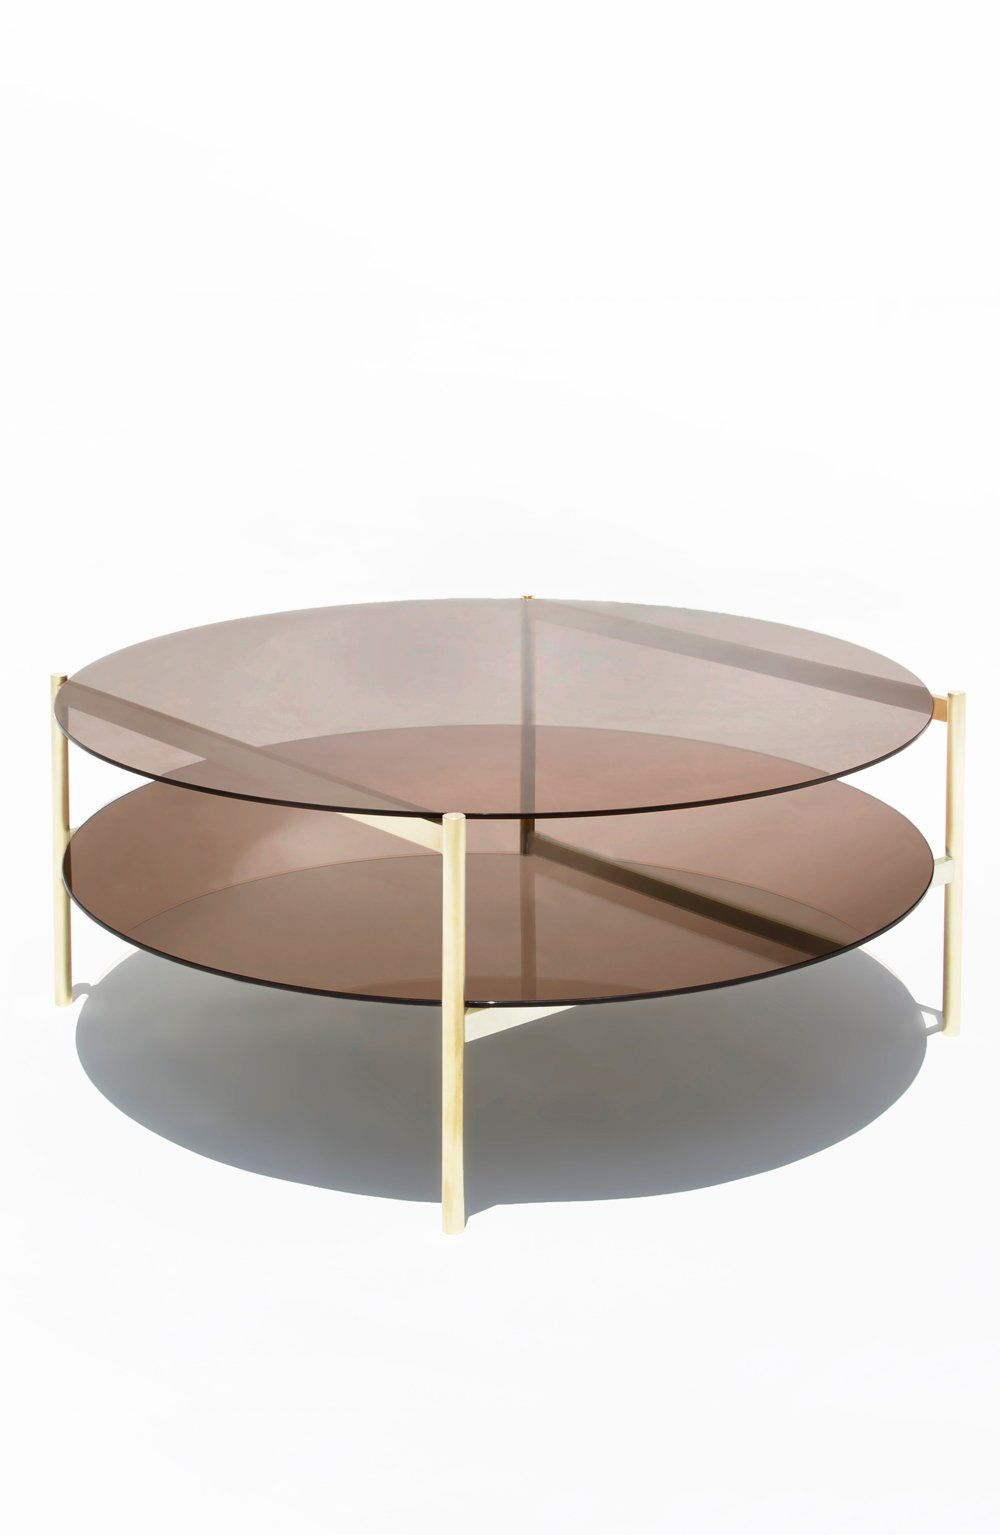 Brass Frame Bronze Glass Bronze Mirror The Duotone Coffee Table Is A Commercial Grade Table Made From Circular Coffee Table Coffee Table Brass Coffee Table